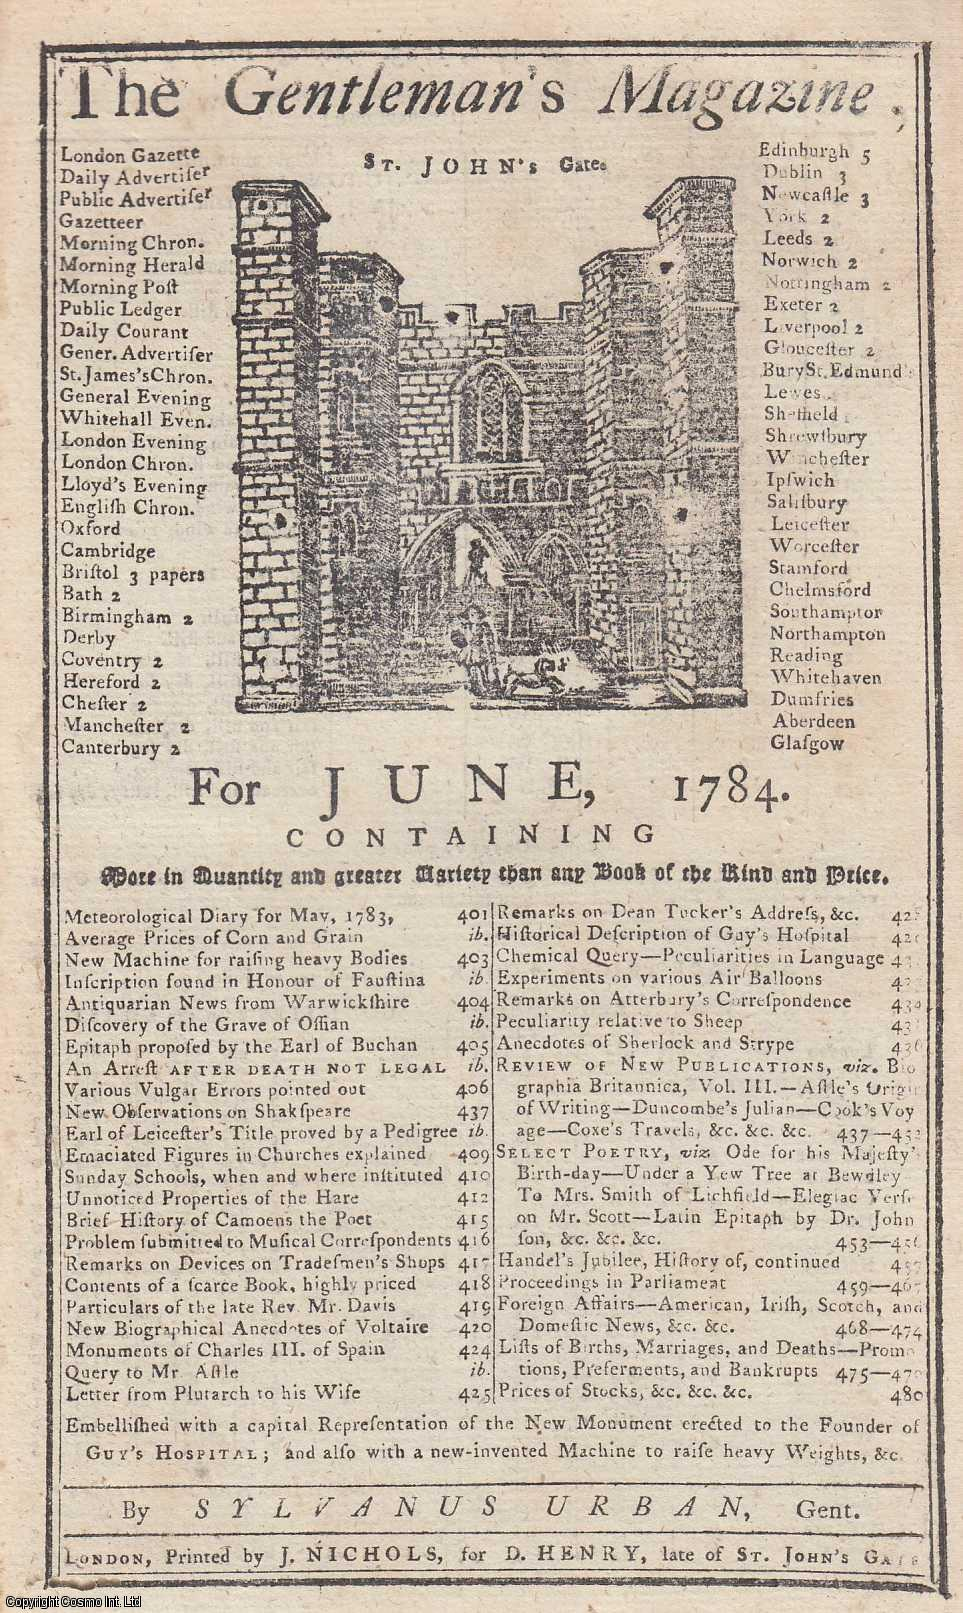 The Gentleman's Magazine for June 1784. FEATURING One plate, of a New Monument erected to the Founder of Guy's Hospital, London., Urban, Sylvanus.